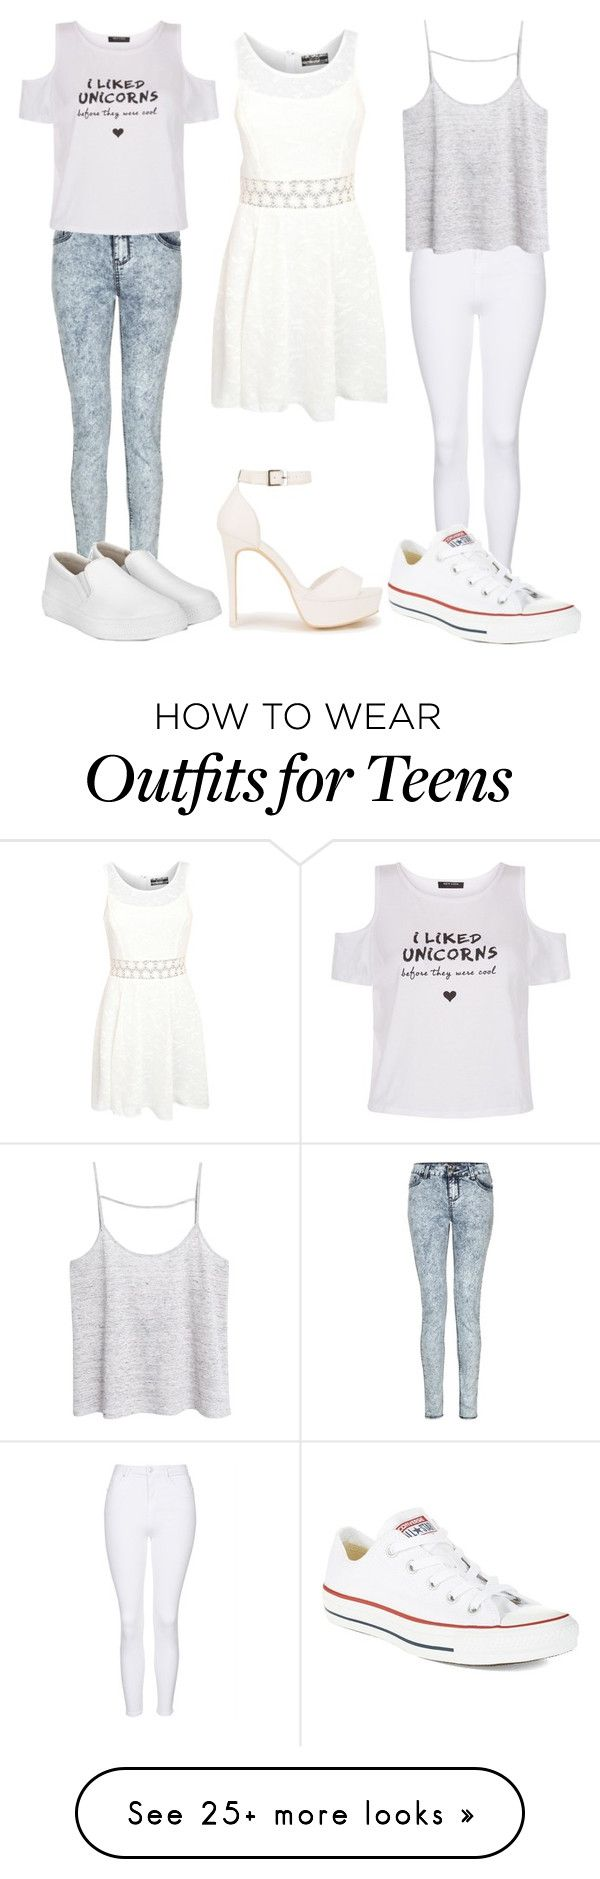 """White Outfits"" by amylovesptx on Polyvore featuring New Look, Pilot, Nly Shoes, Topshop, MANGO and Converse"